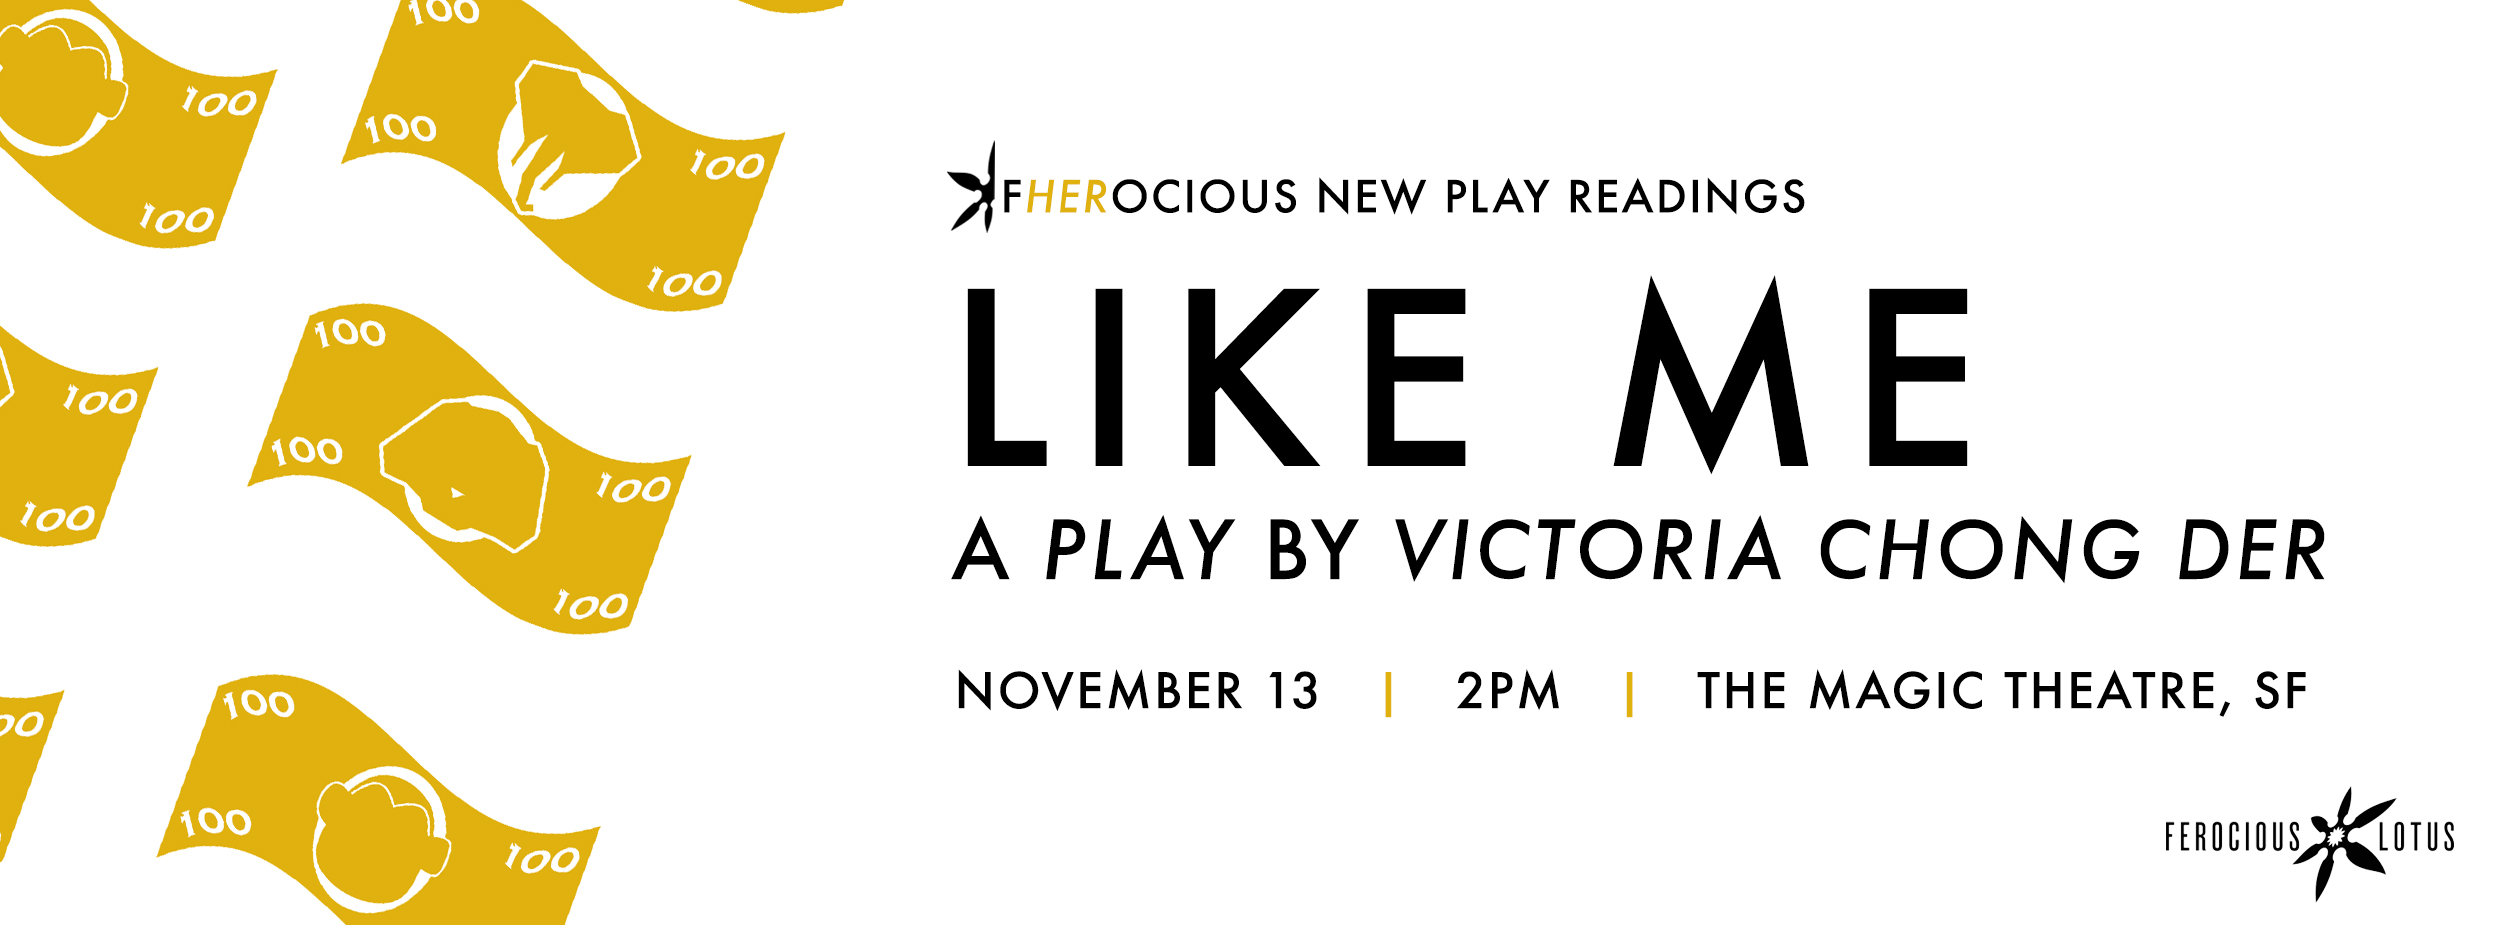 LIKE ME , by Victoria Chong Der   Nov. 13 | Sunday | 2p  Directed by  May Liang  A bold new work on sex trafficking in Oakland and its youngest victims, told through the stories of four girls, their friendships, rivalries, and struggle for freedom.  Featuring Brit Frazier*, Charisse Loriaux, Grace Ng, Maryssa Wanlass* and Aaron Wilton*.